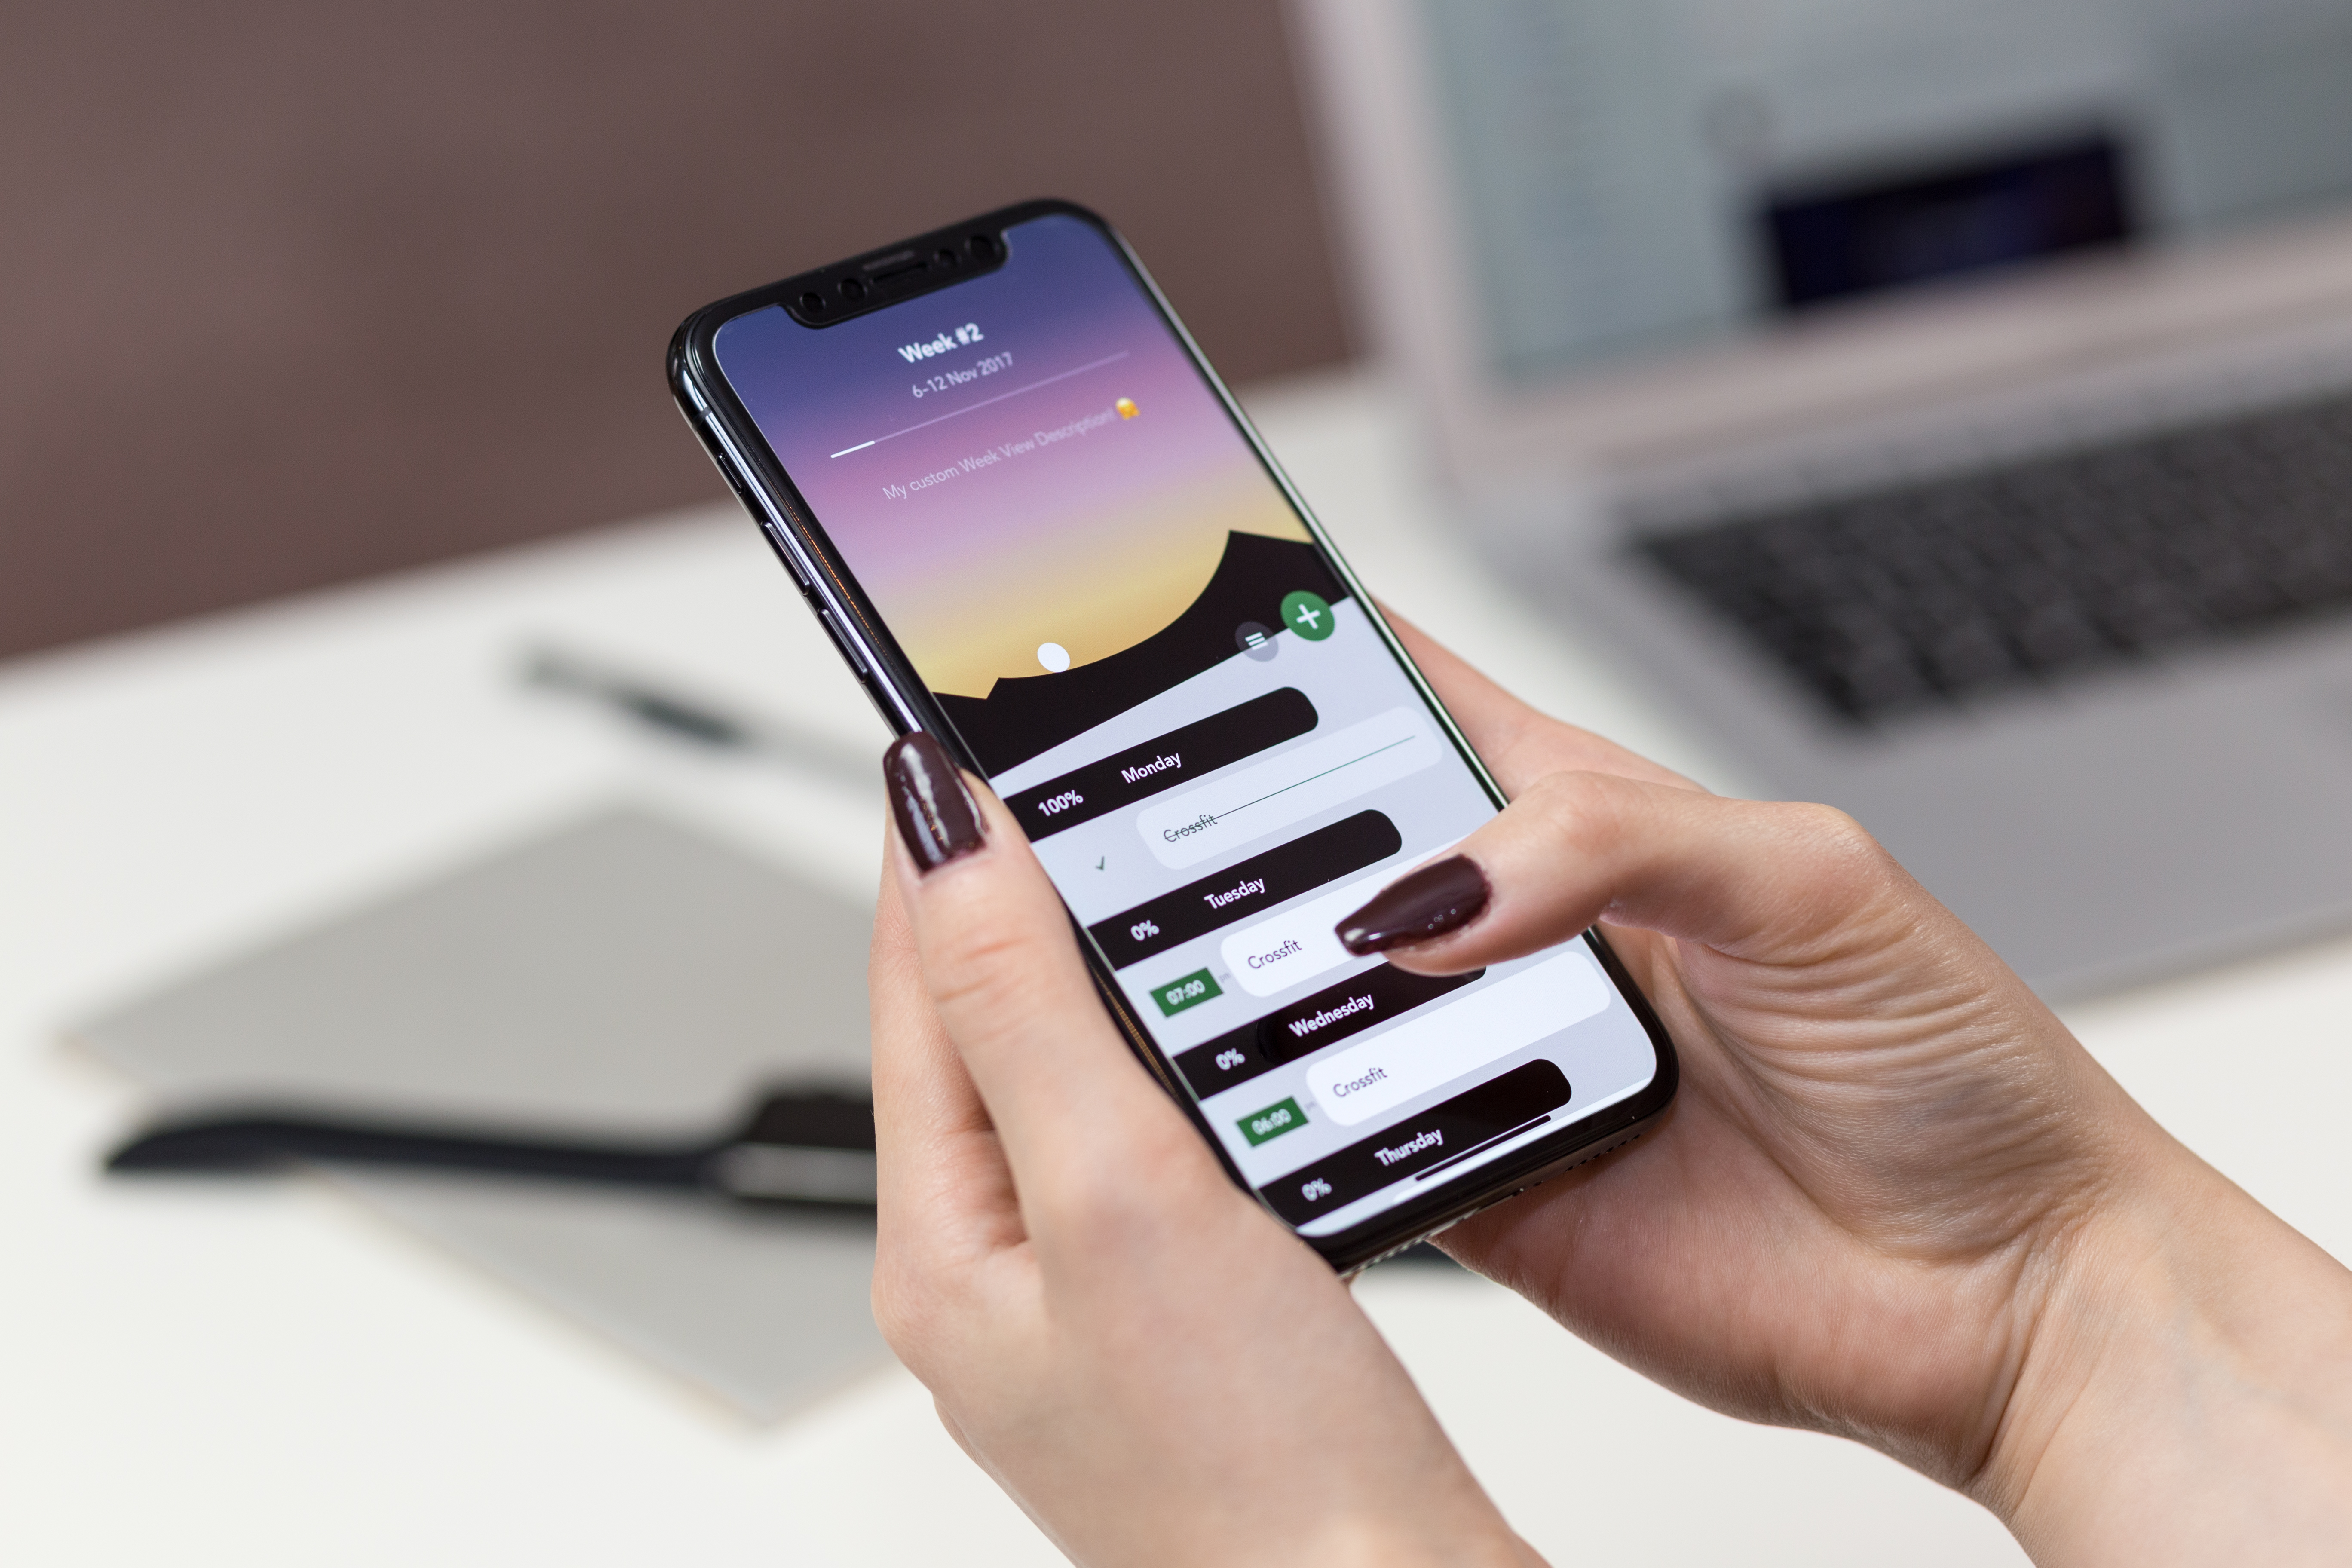 Best Wallpapers For Iphone X App Person Holding Silver Iphone X Turned On 183 Free Stock Photo